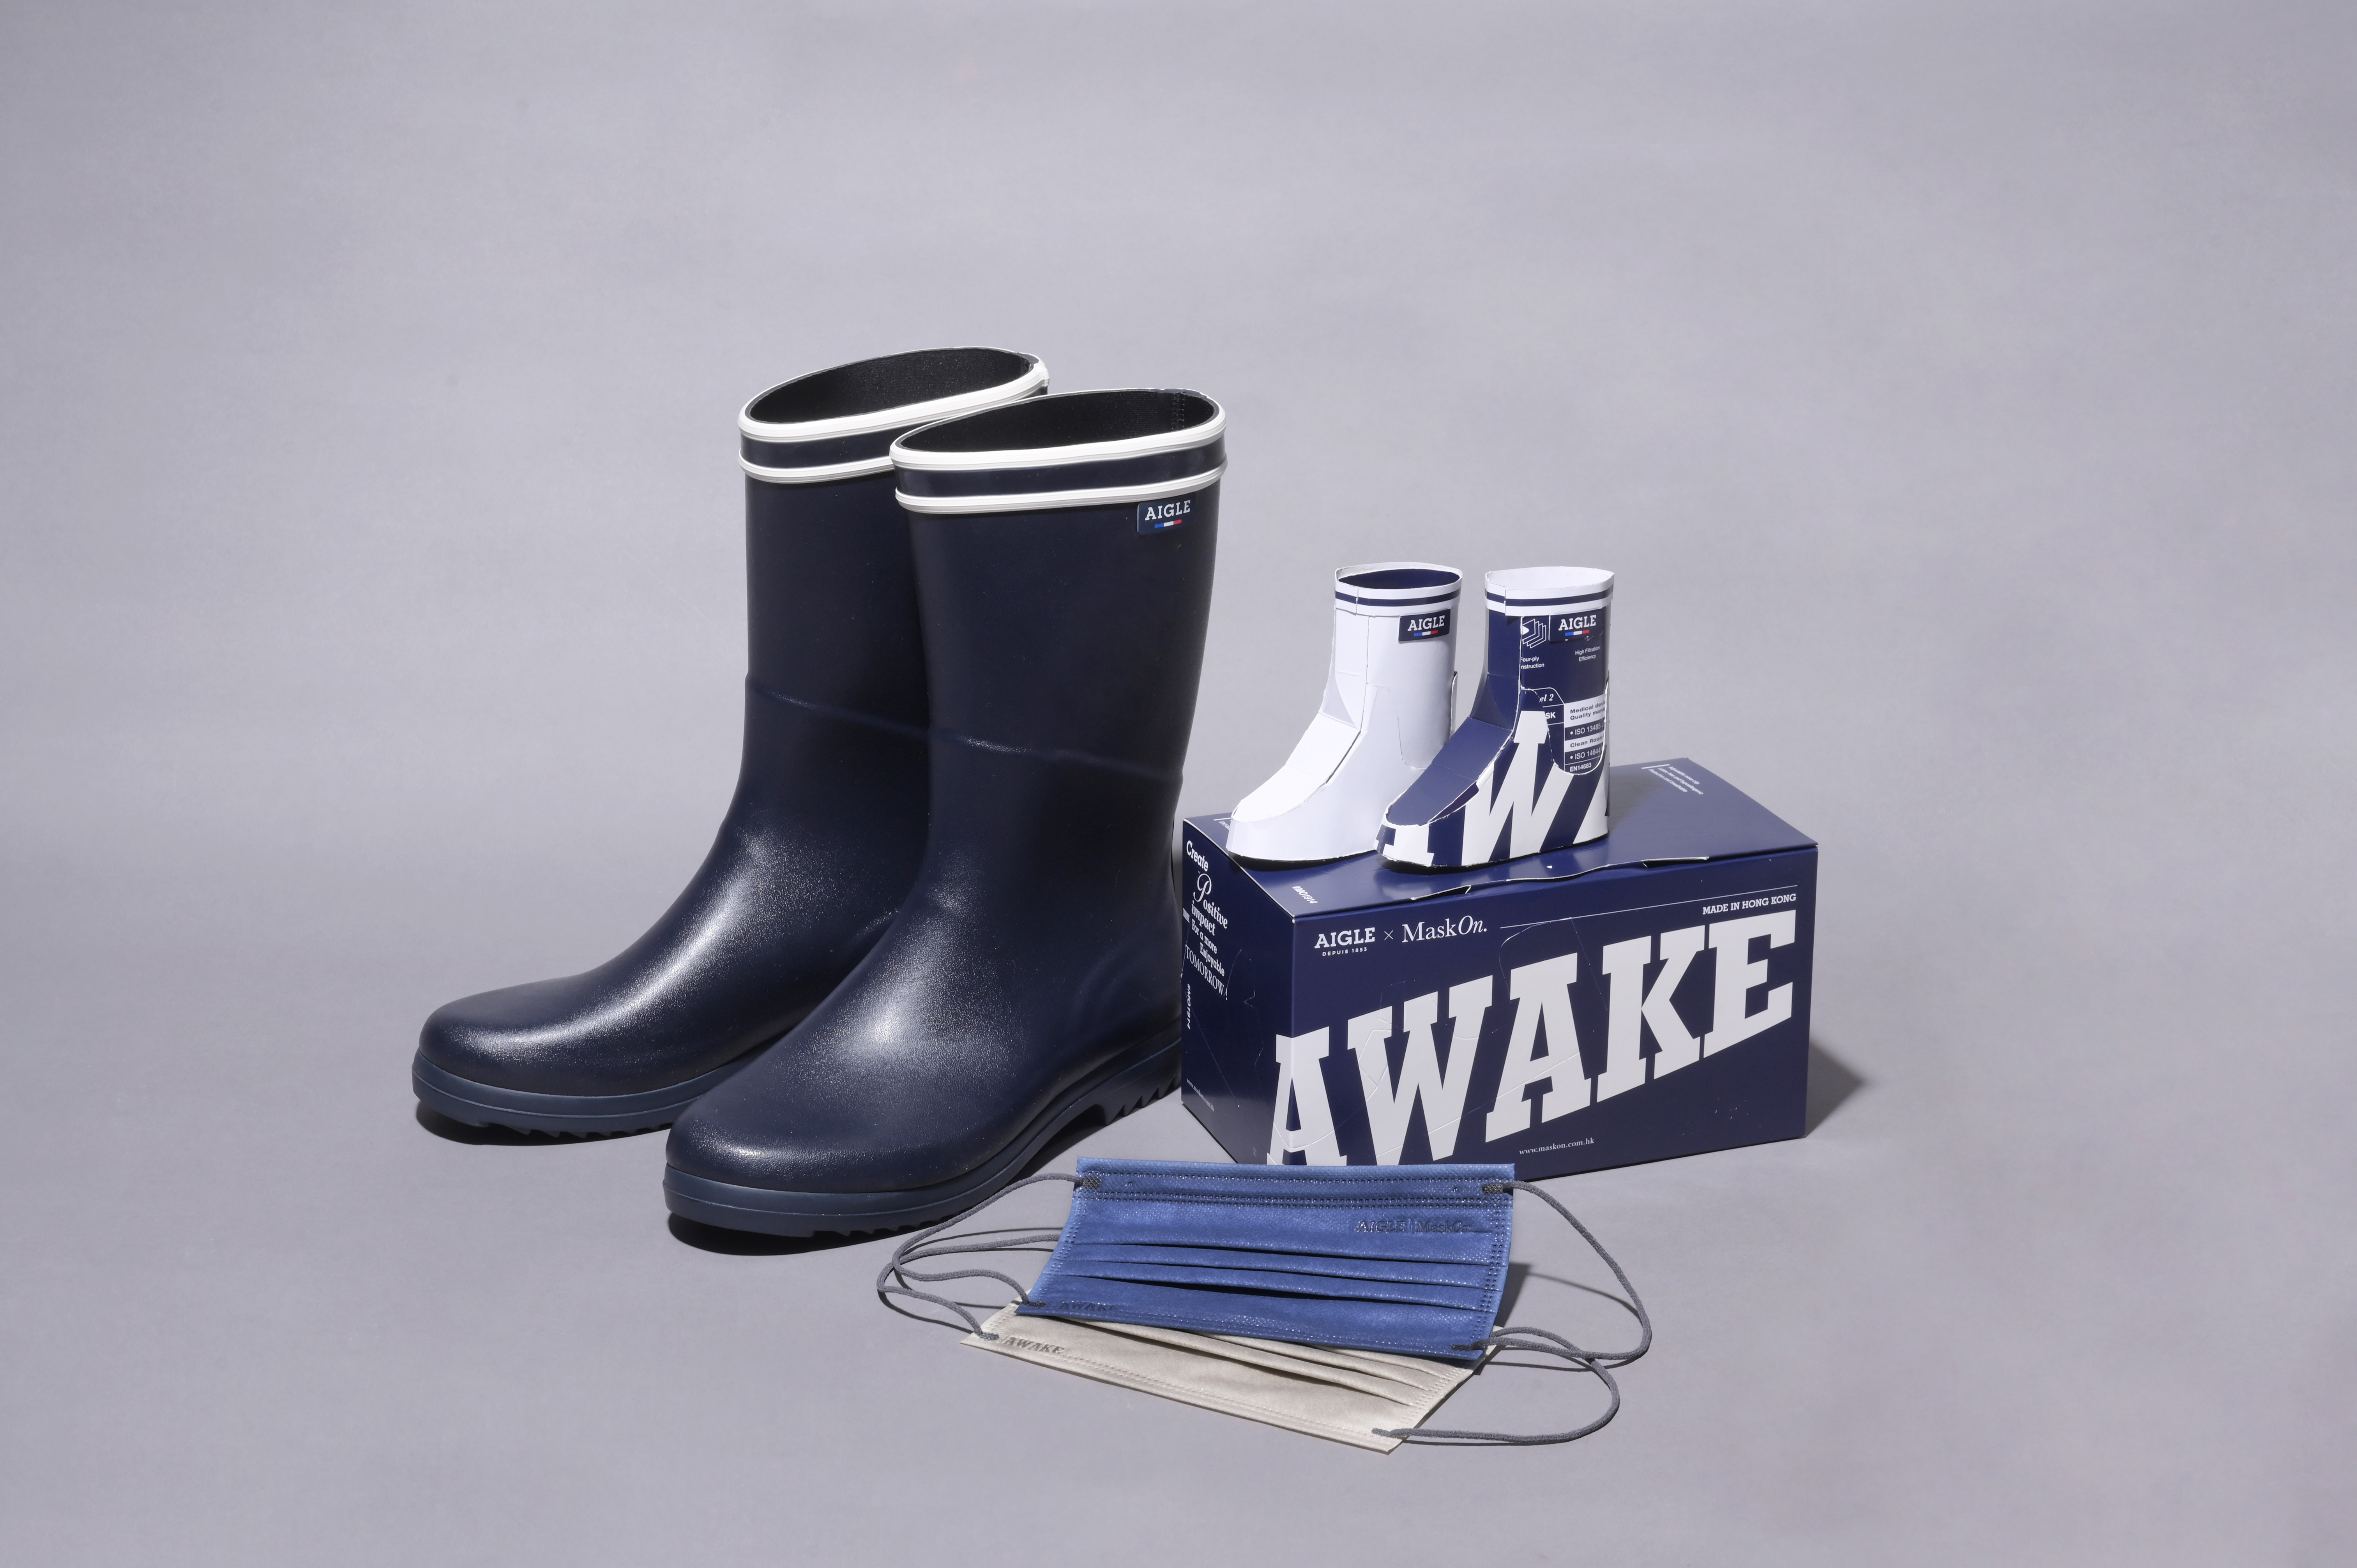 AIGLE COLLABORATE WITH HONG KONG LOCAL BRAND MASKON._ TO ENCOURAGE UPCYCLING CREATIVELY